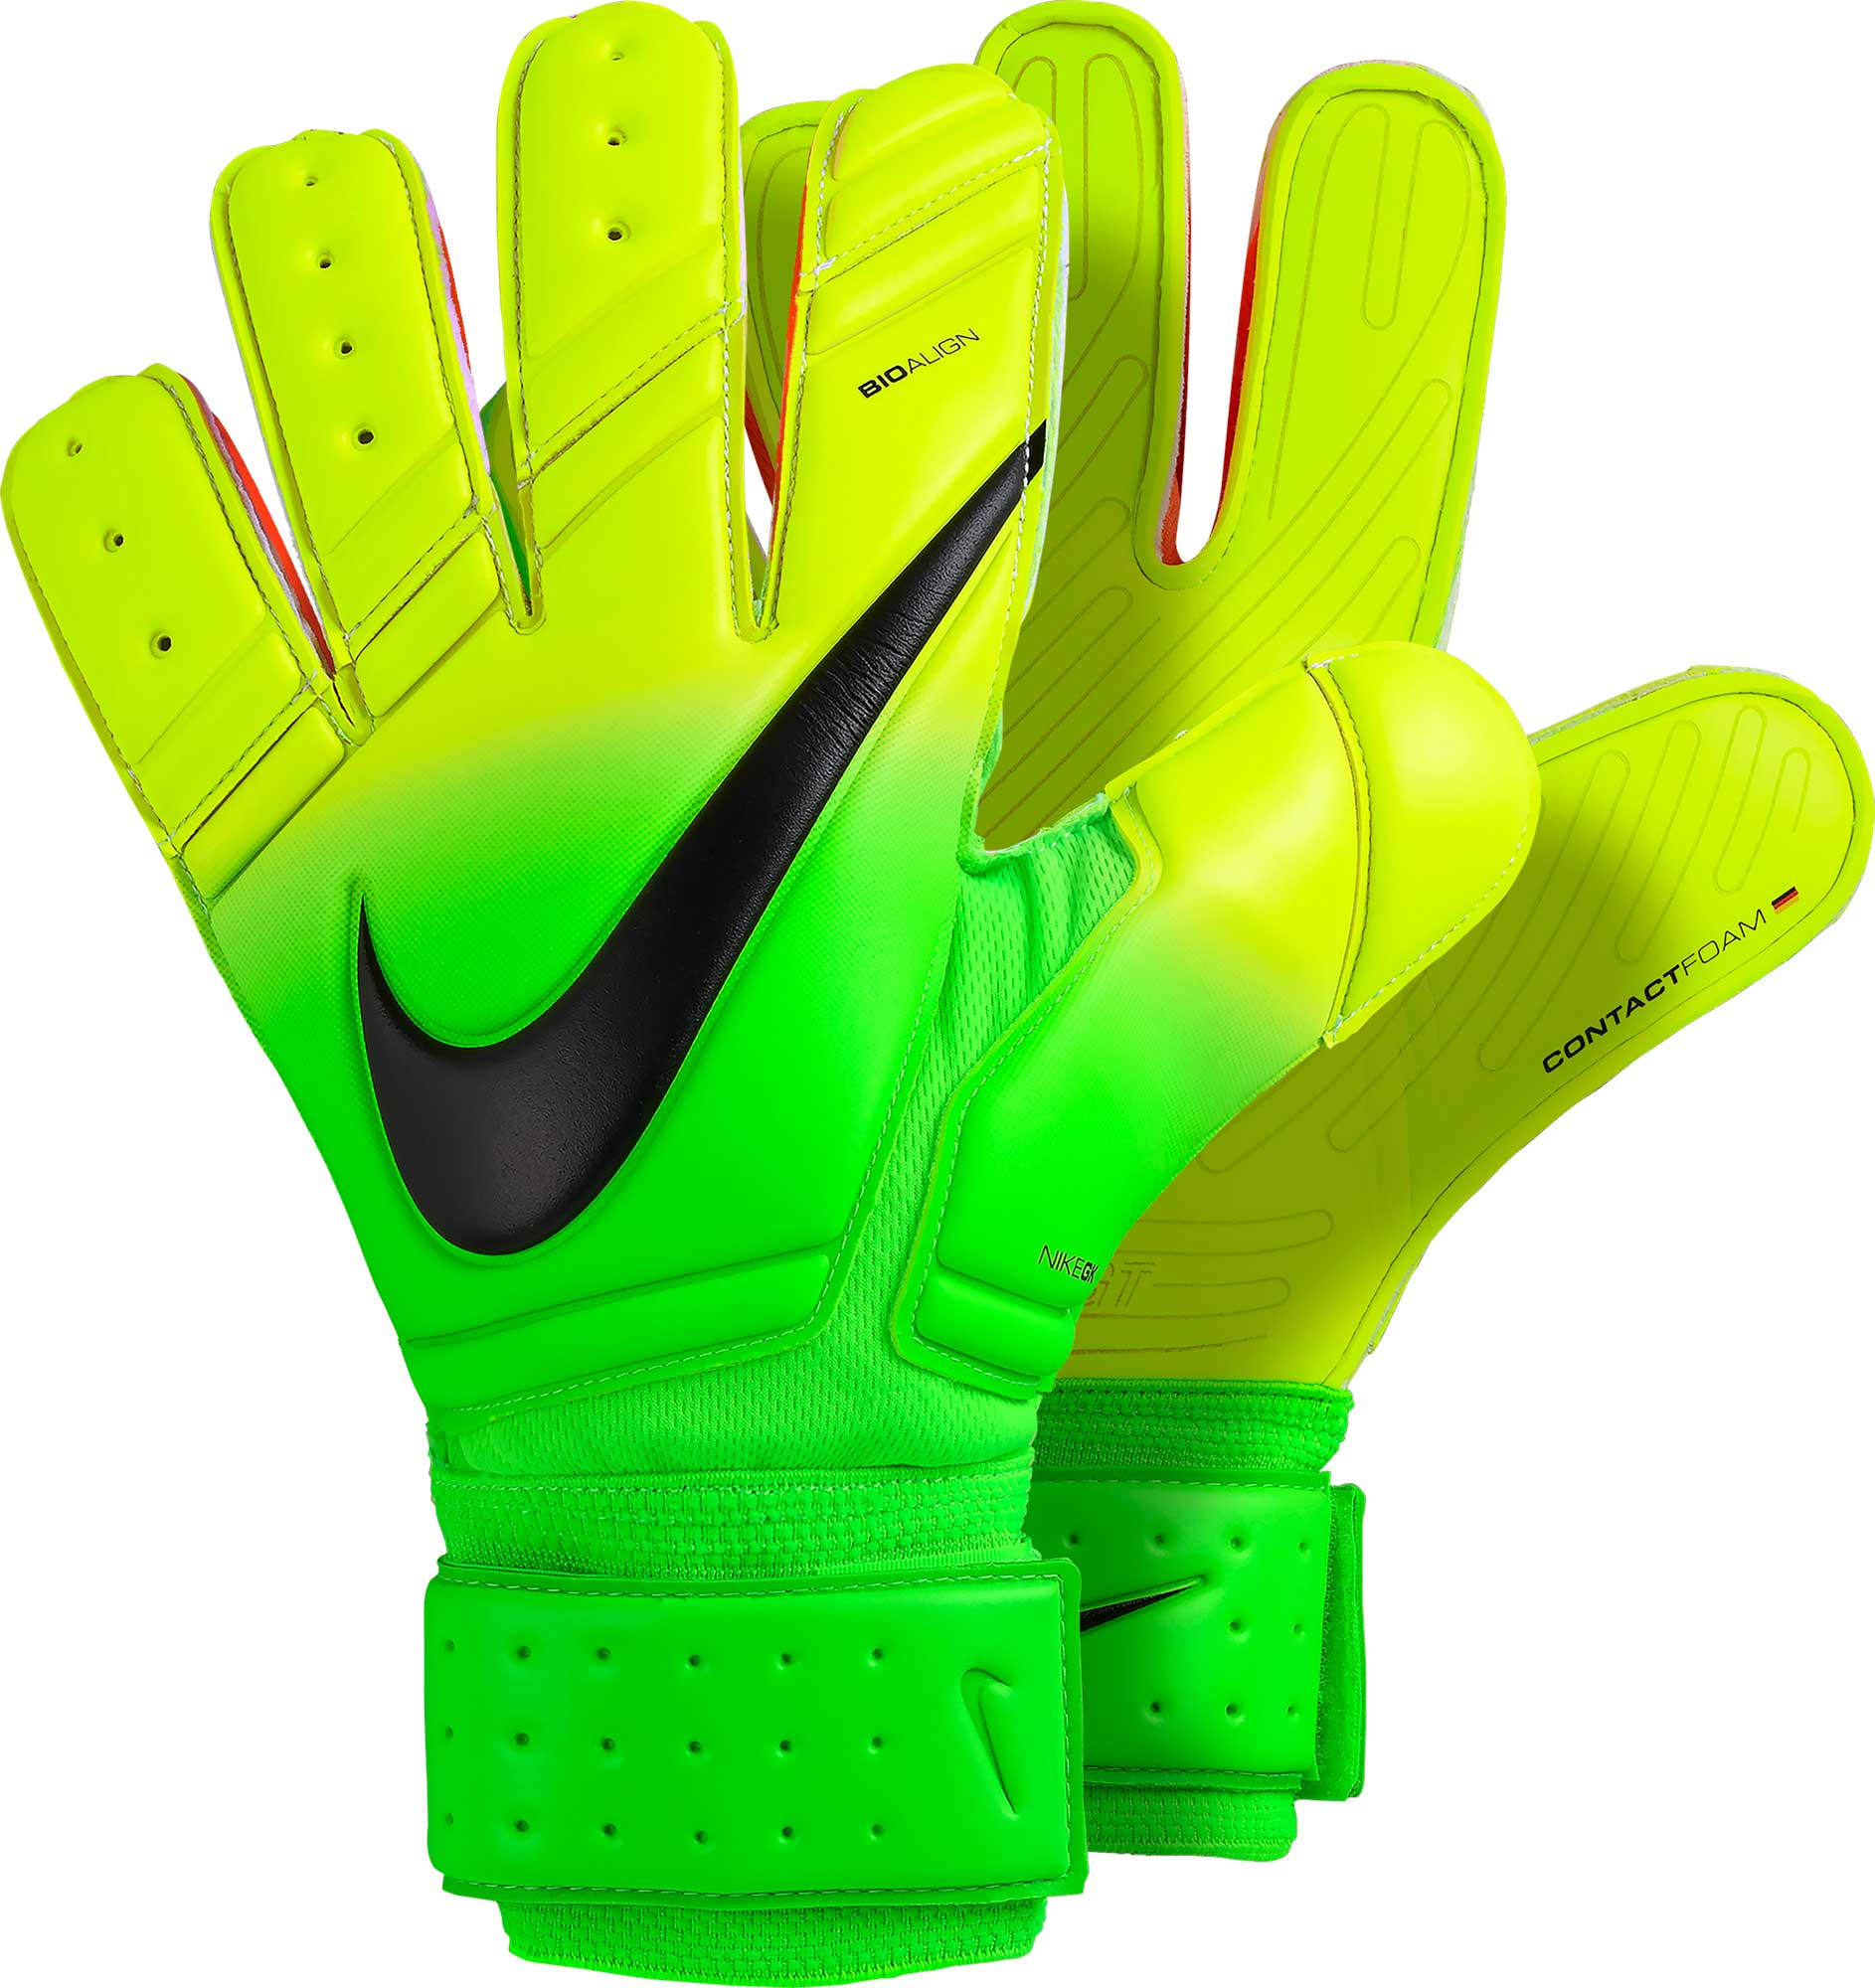 Nike Premier SGT Goalkeeper Gloves - Electric Green   Volt - Soccer ... d65d4a520